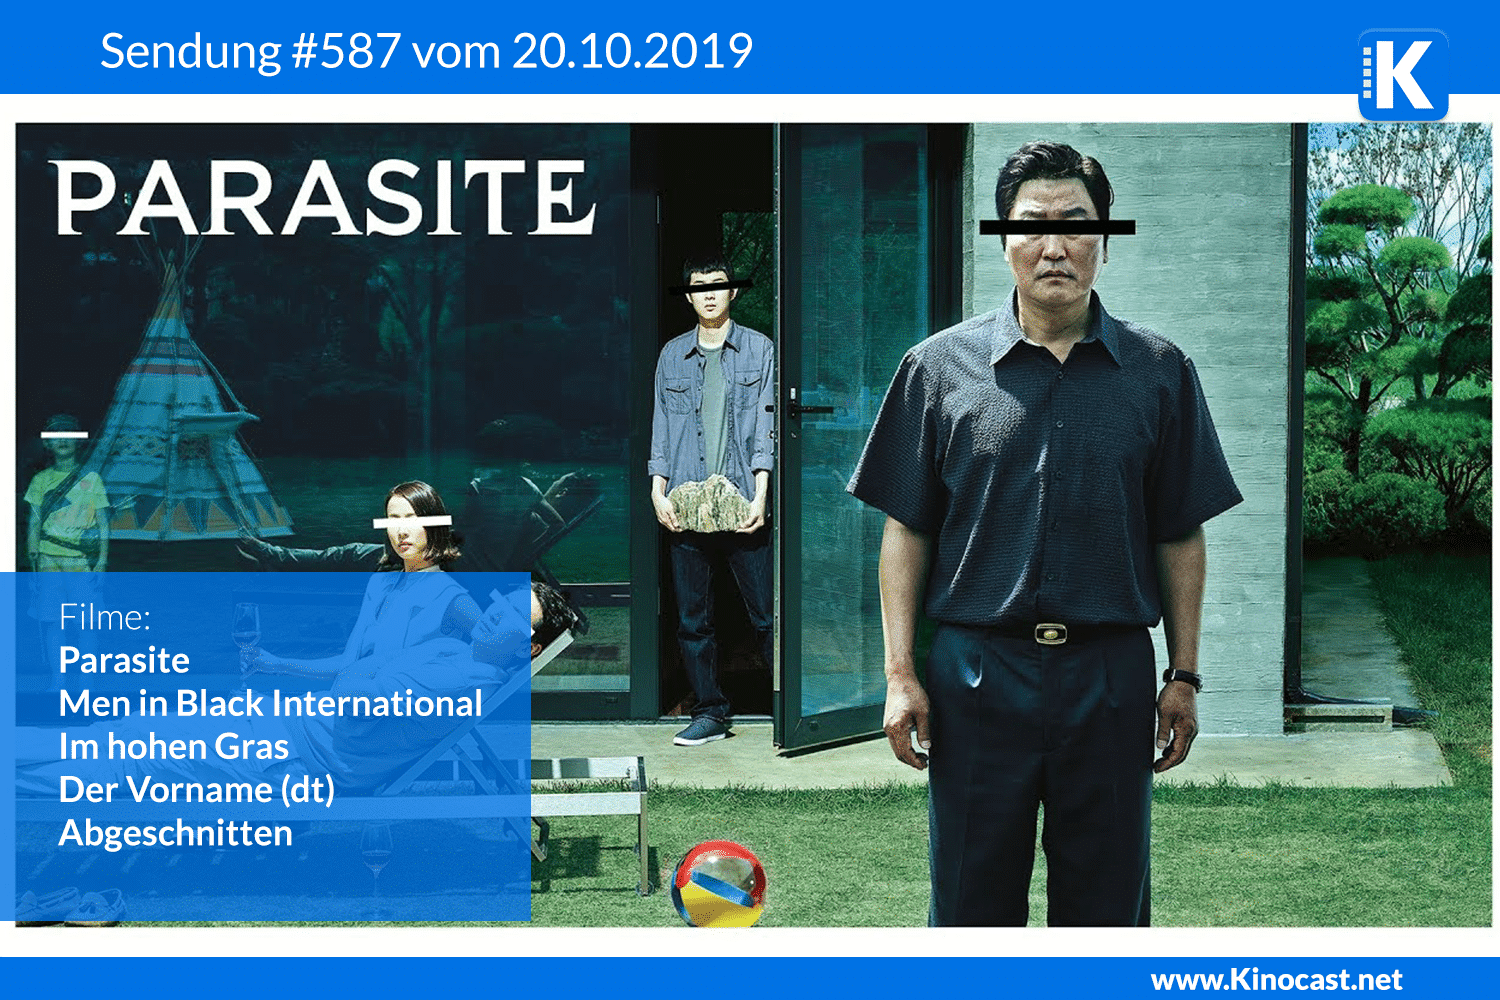 Parasite Men in Black International Im Hohen Gras Preview Download film german deutsch